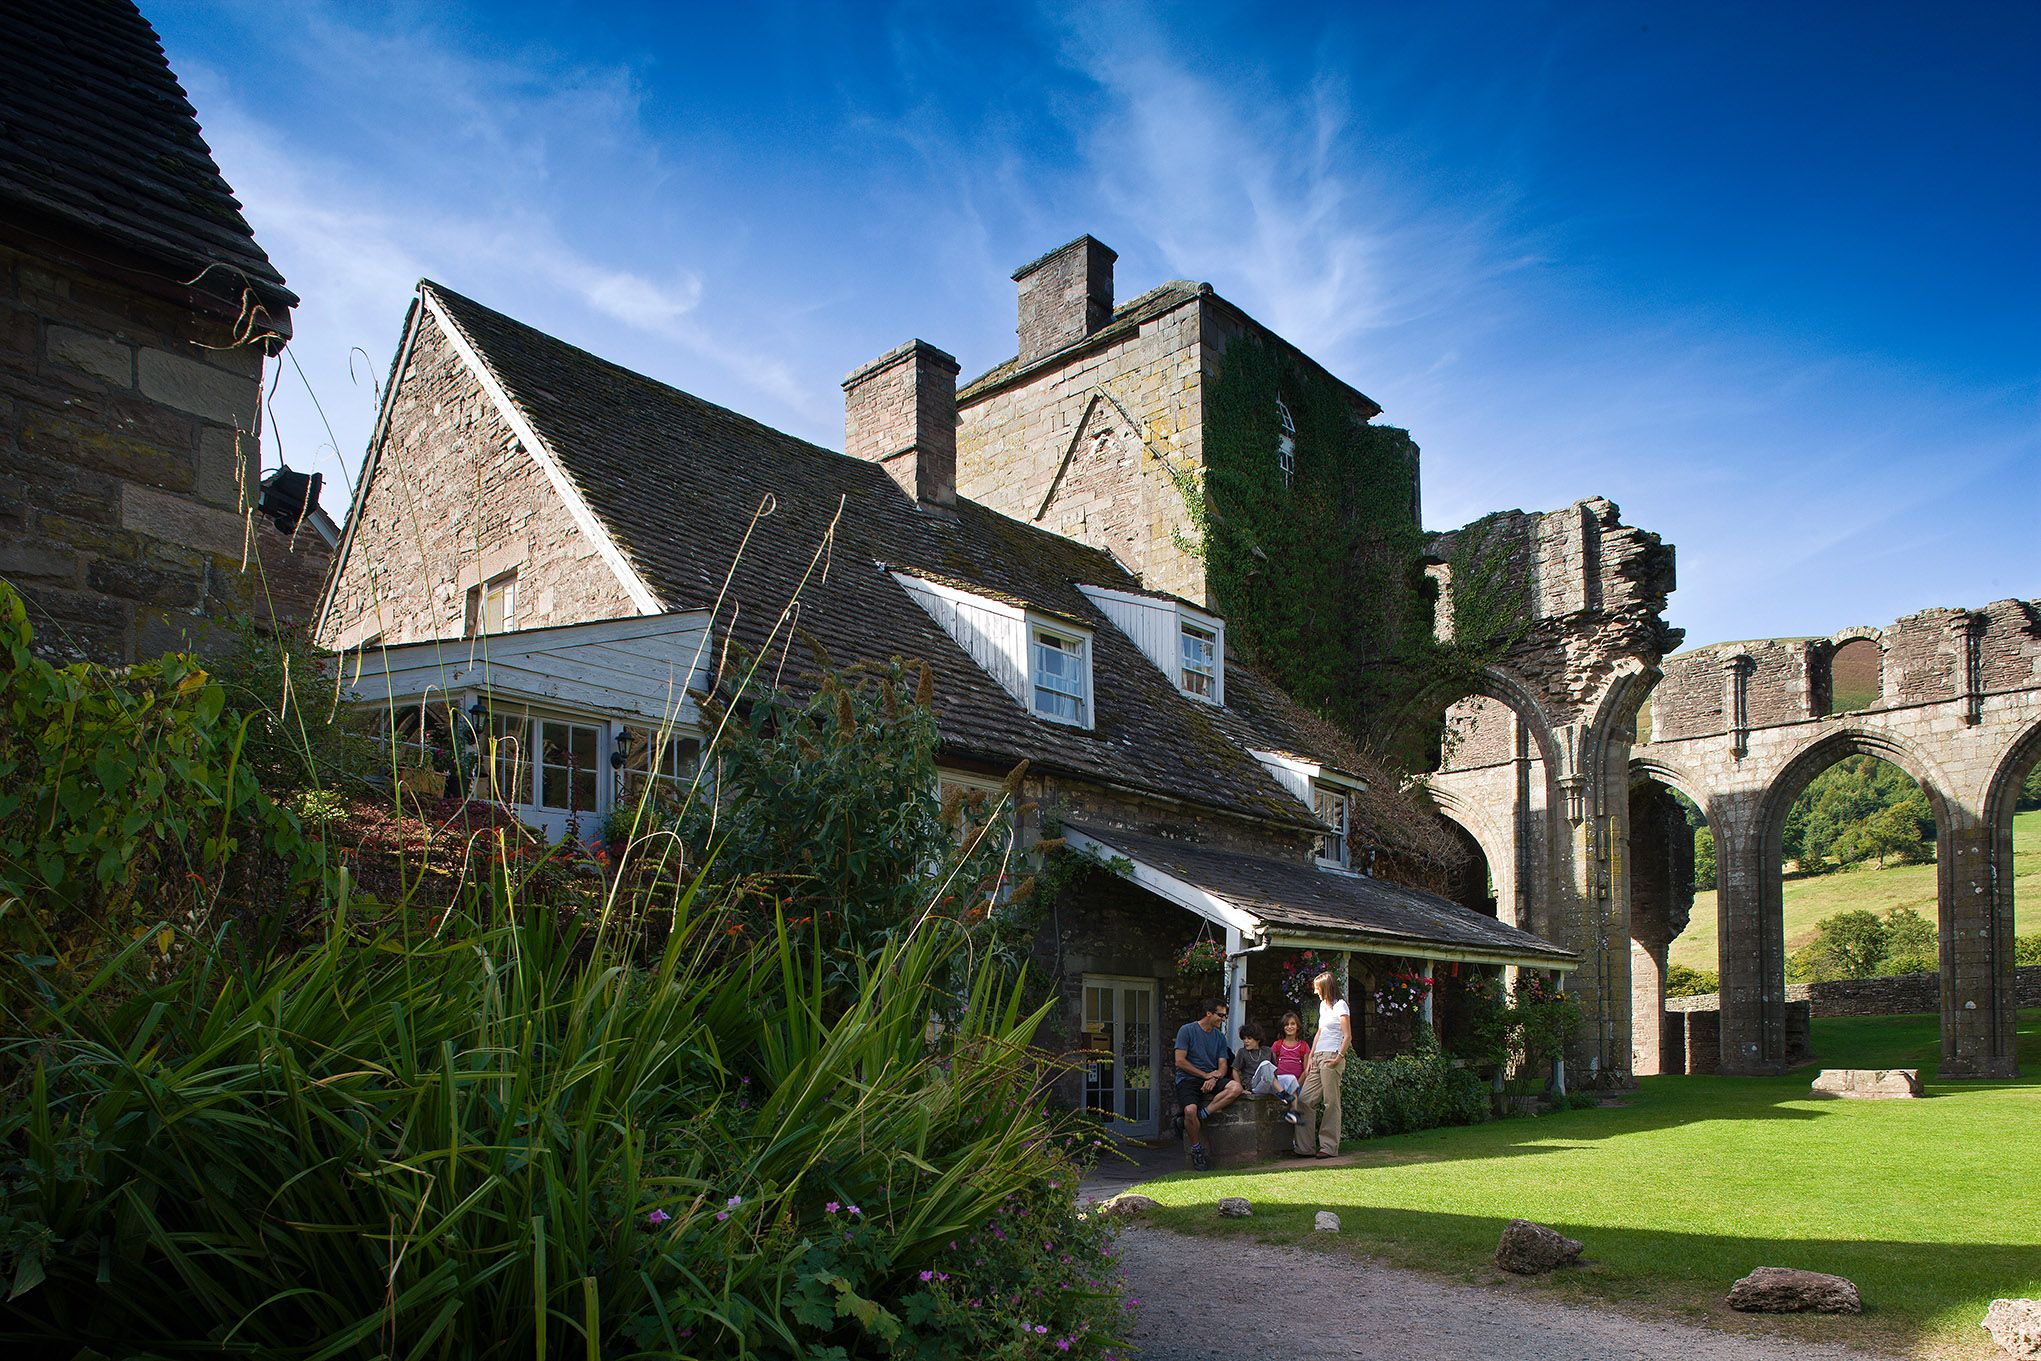 Abbey Hotel At Llanthony Priory In The Black Mountains Area Of Brecon Beacons Mid